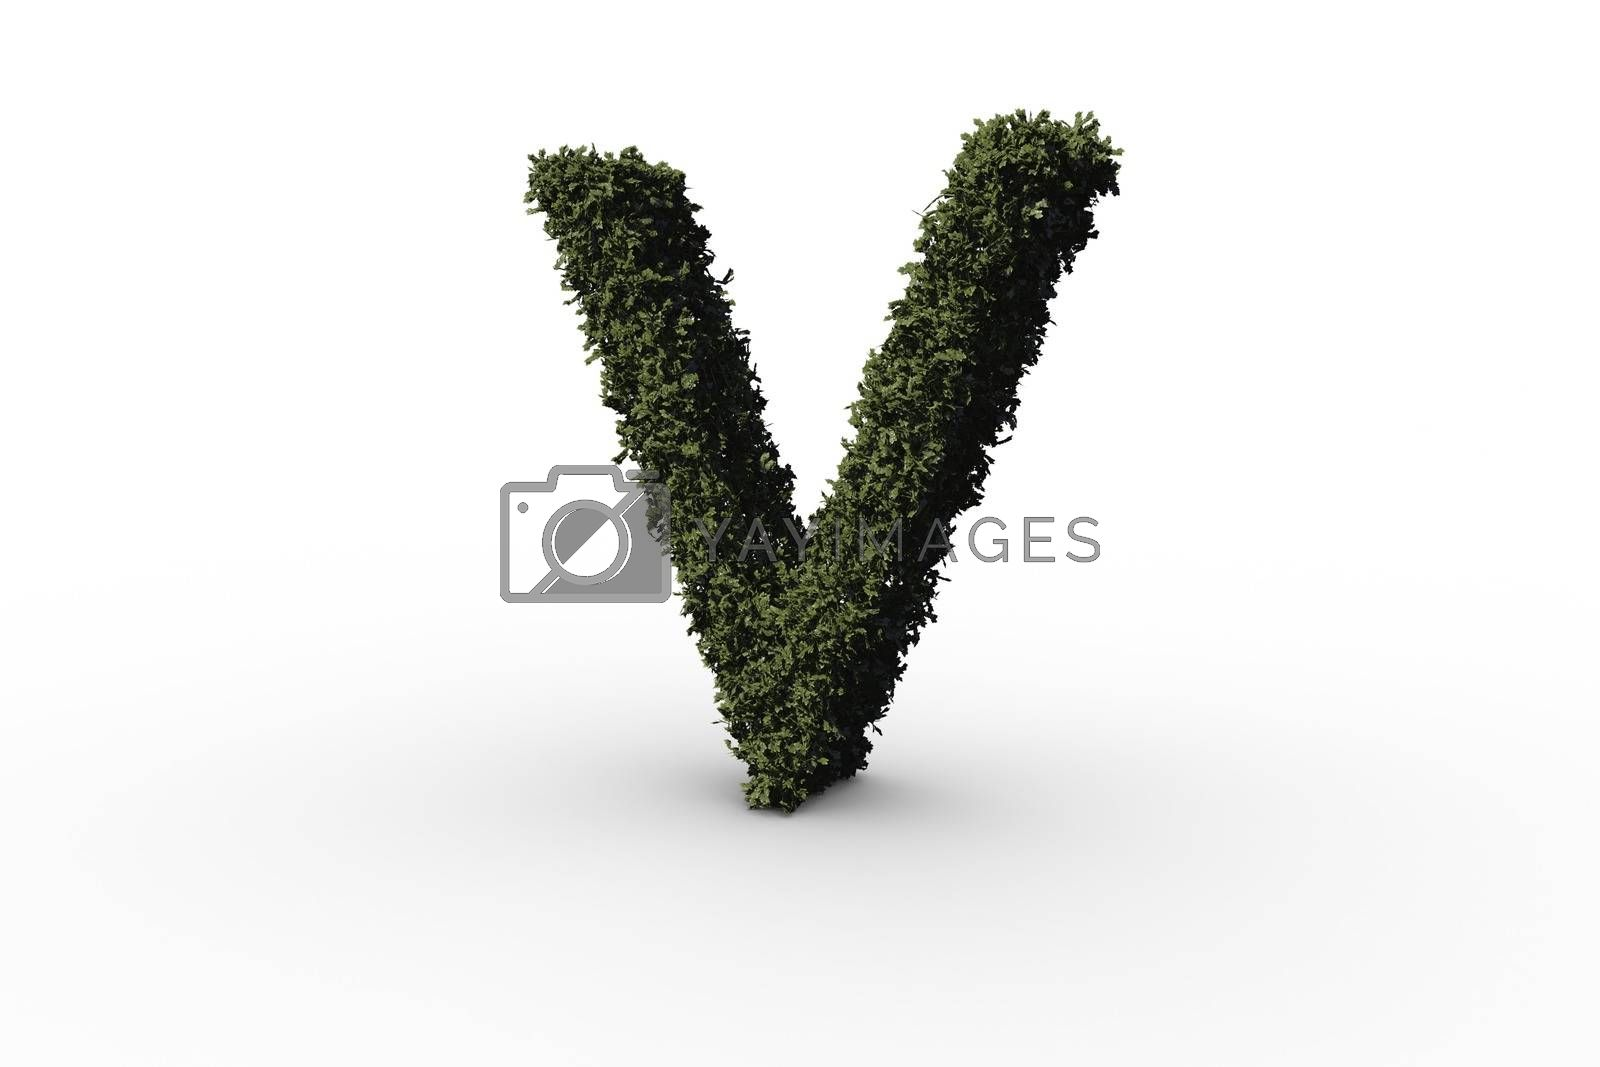 Royalty free image of Capital letter v made of leaves by Wavebreakmedia